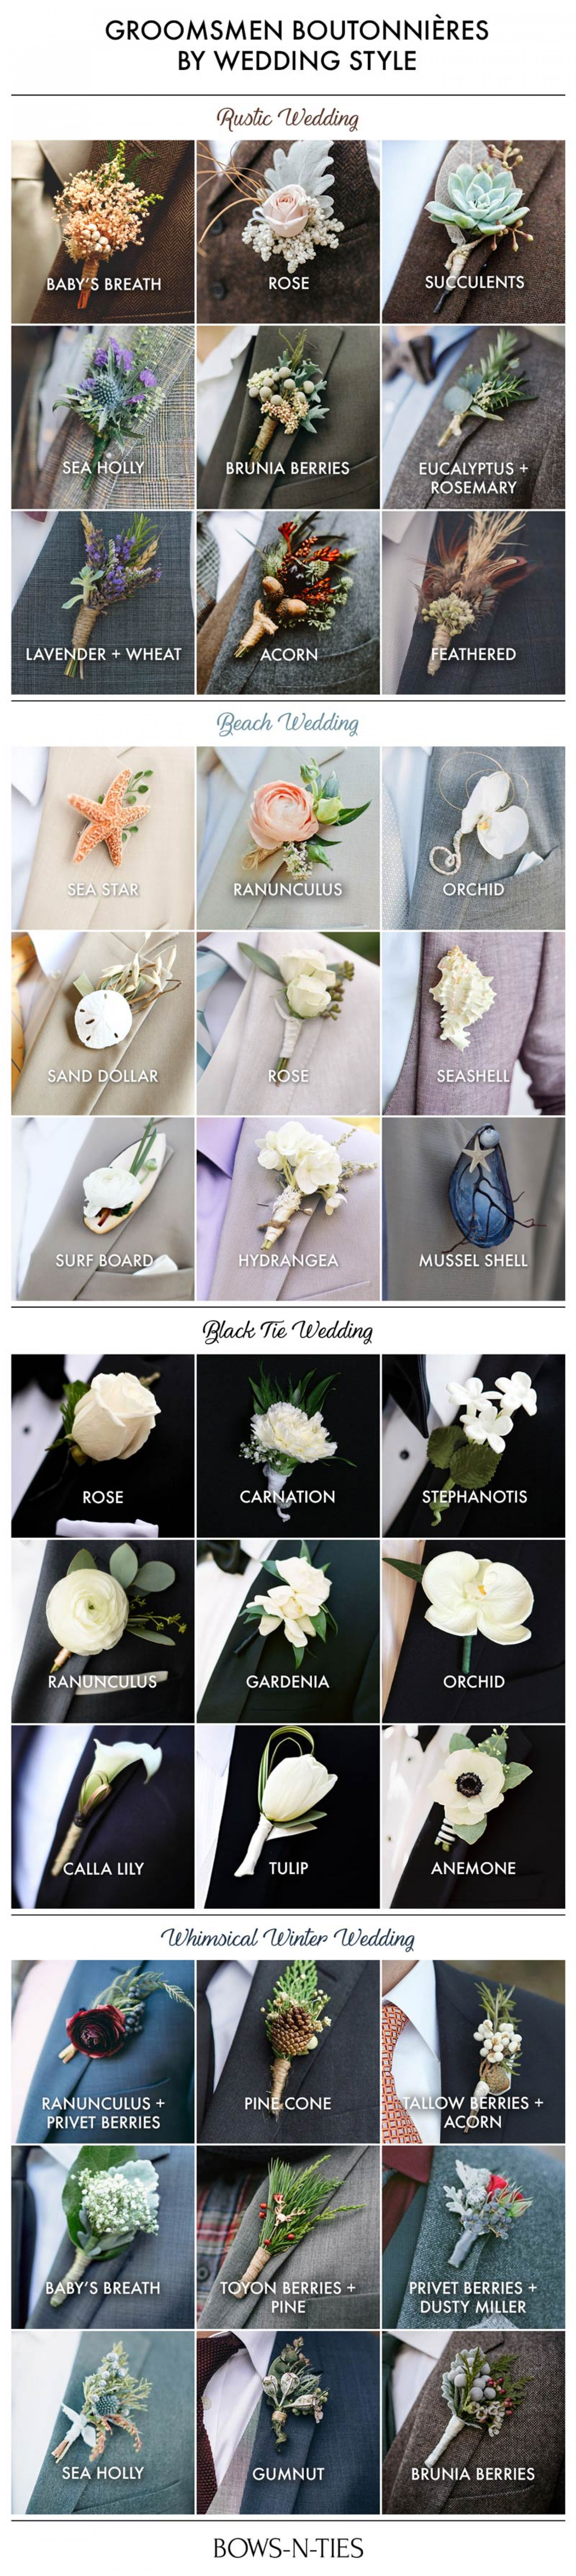 Mens Boutonniere Guide Infographic